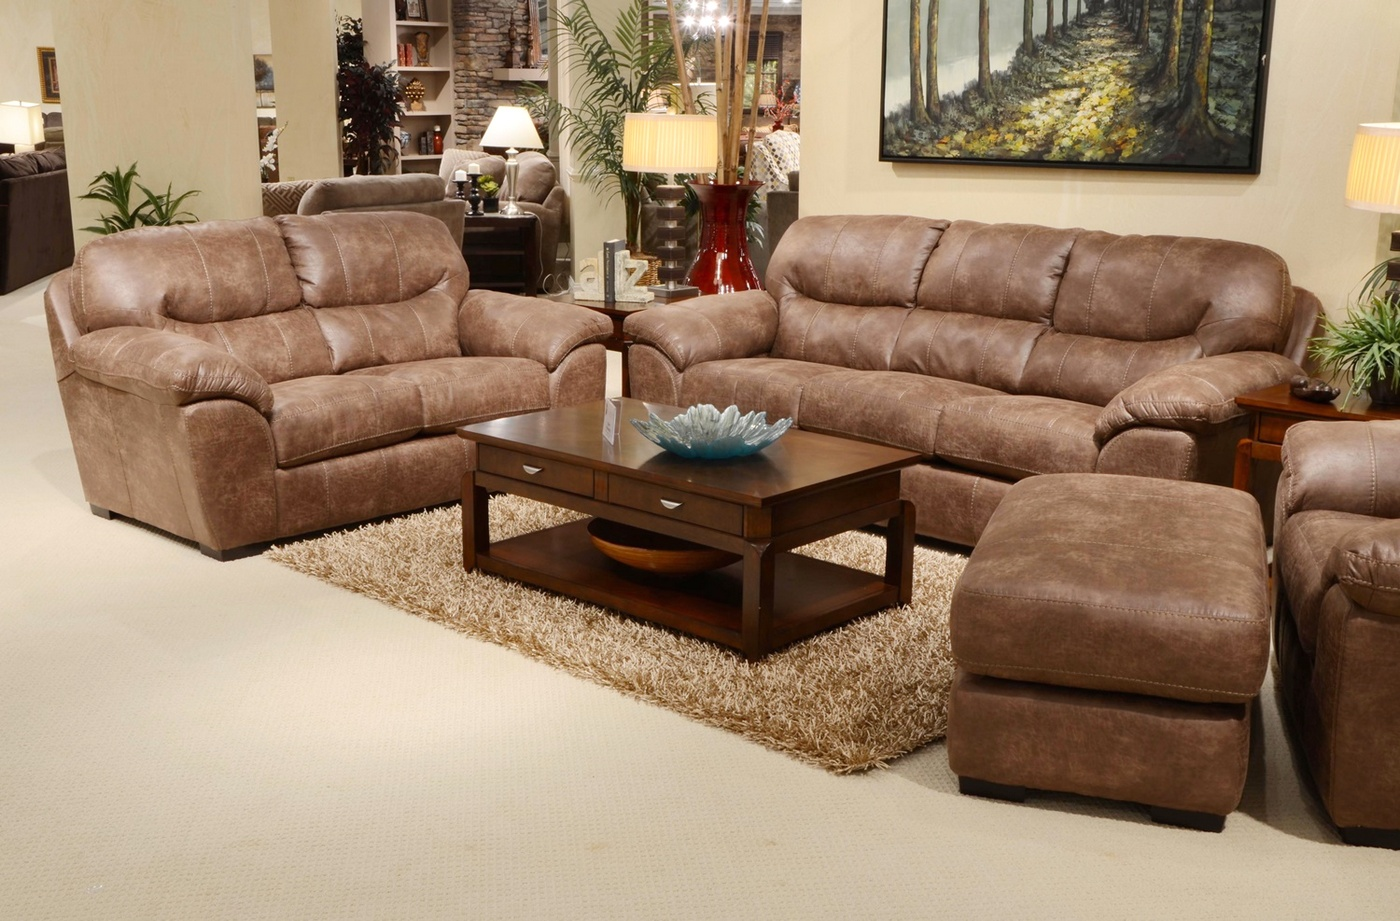 4453 Grant Stilt Brown Sofa And Loveseat In Bonded Leather